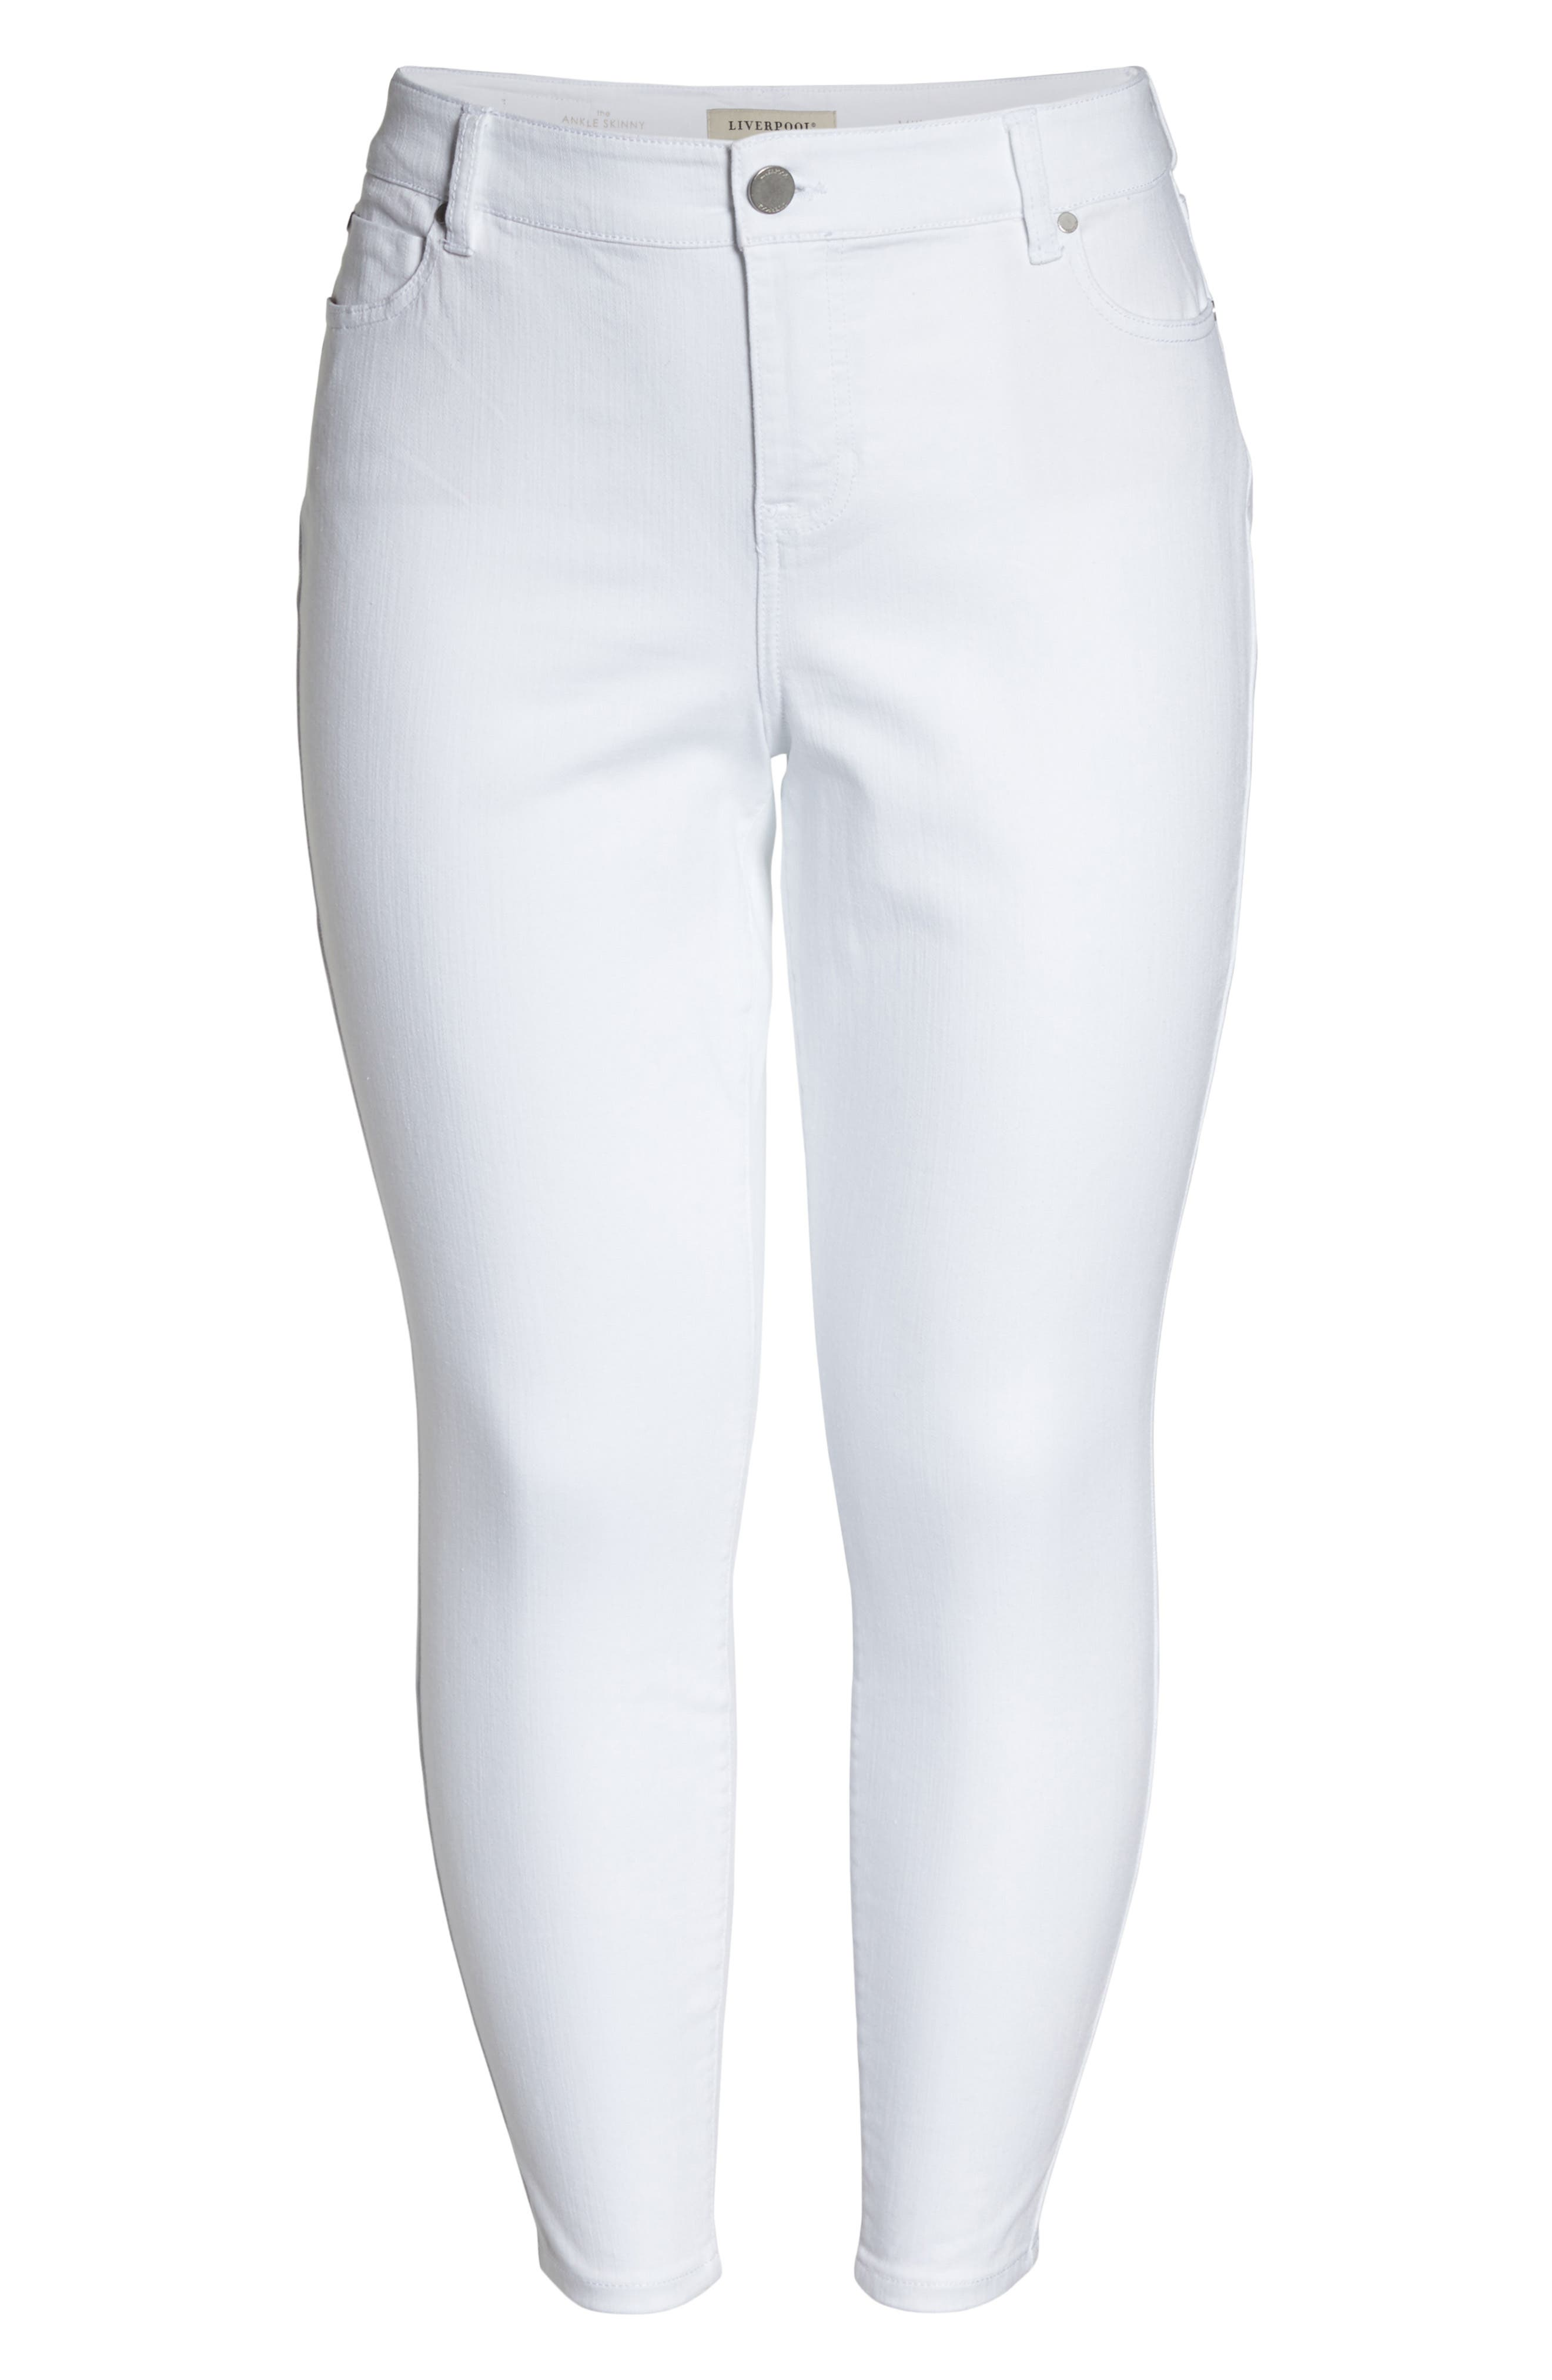 Penny Ankle Skinny Jeans,                             Alternate thumbnail 6, color,                             Bright White